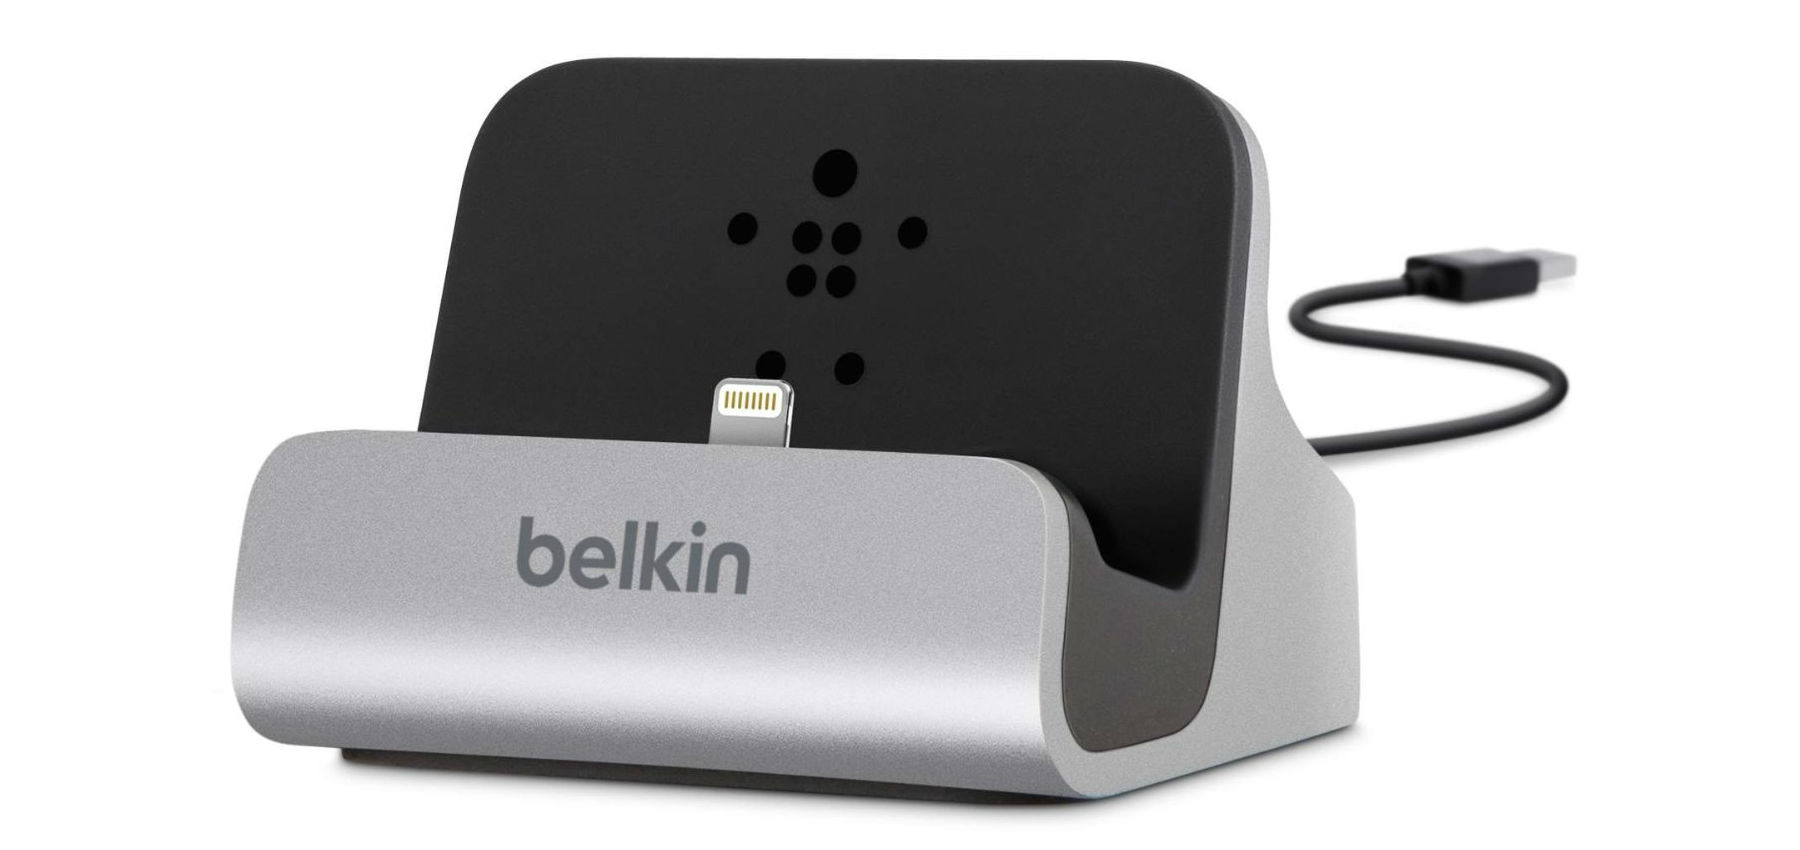 thumb - Dock Charge + Sync de Belkin pour iPhone 5 [Test]